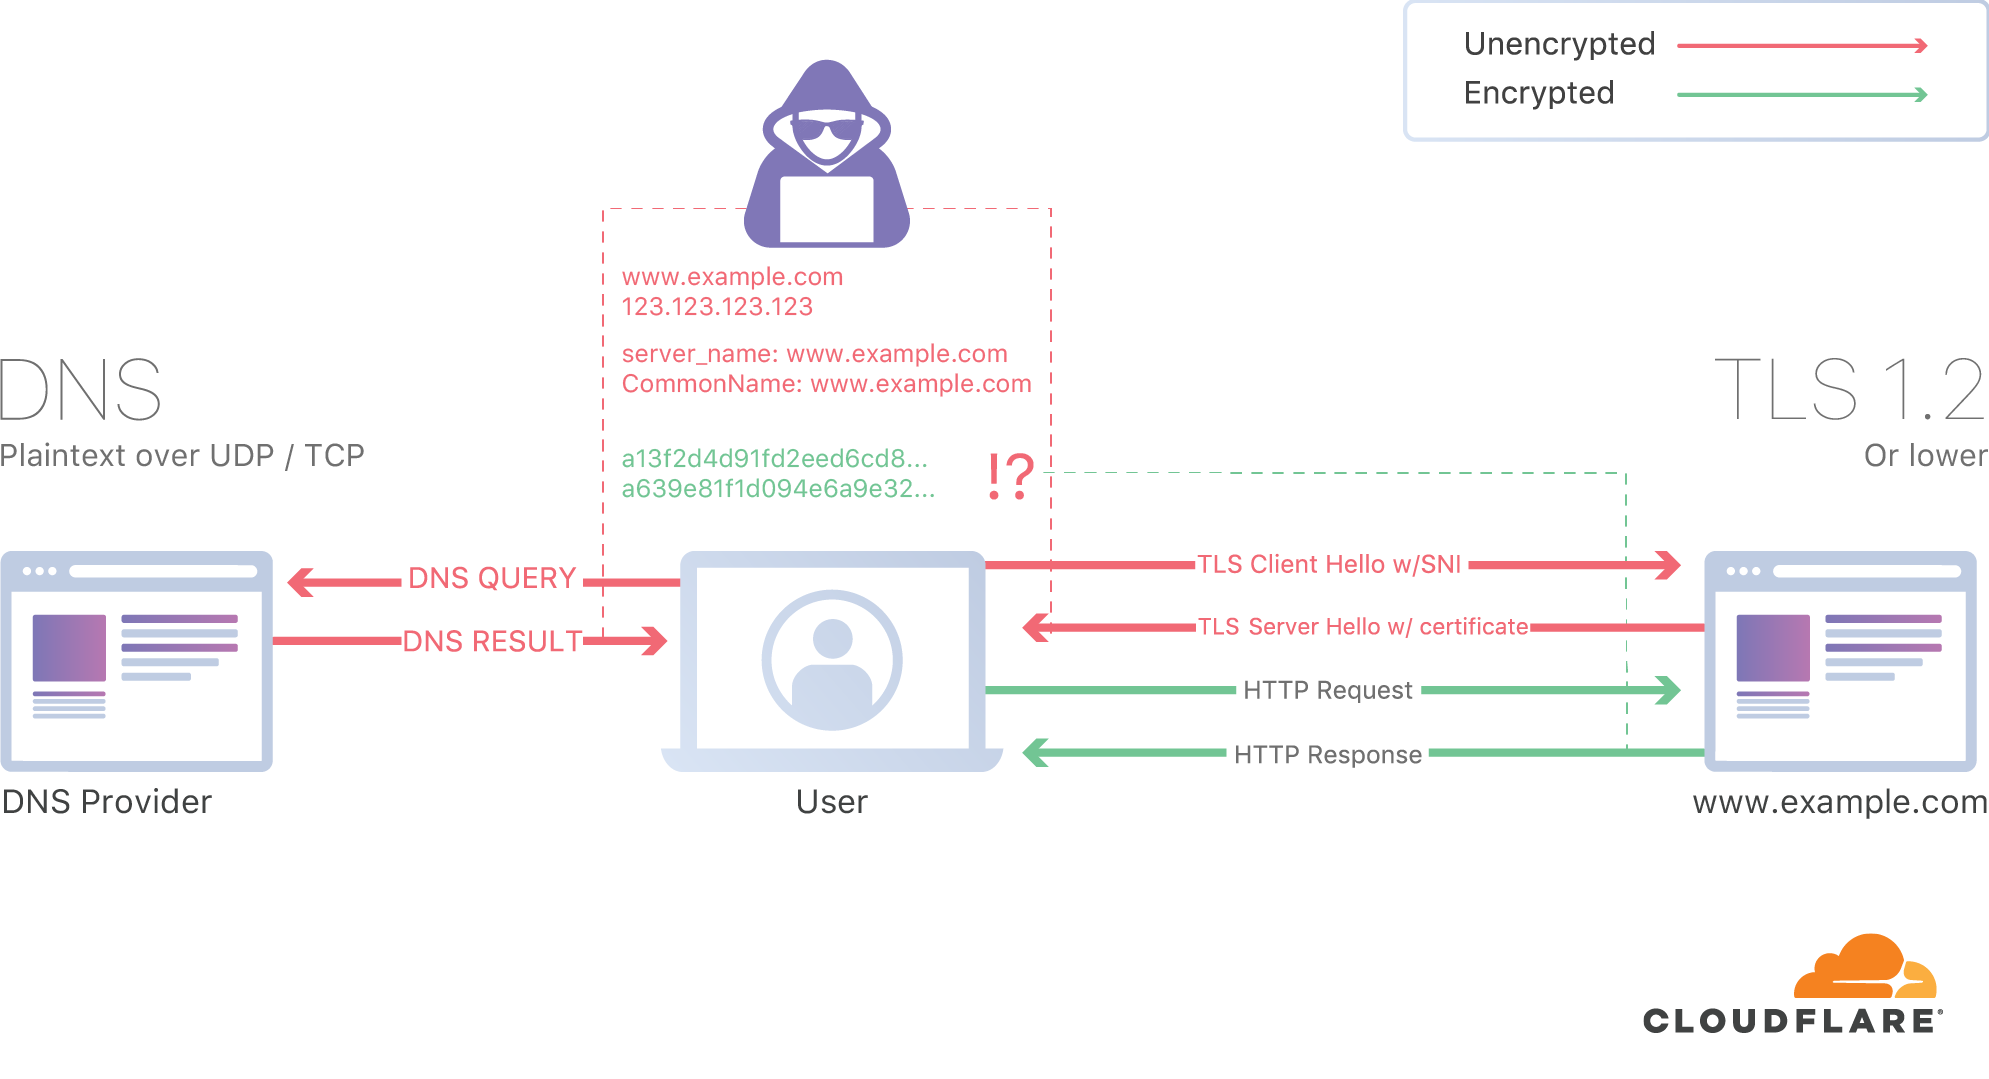 A DNS infographic